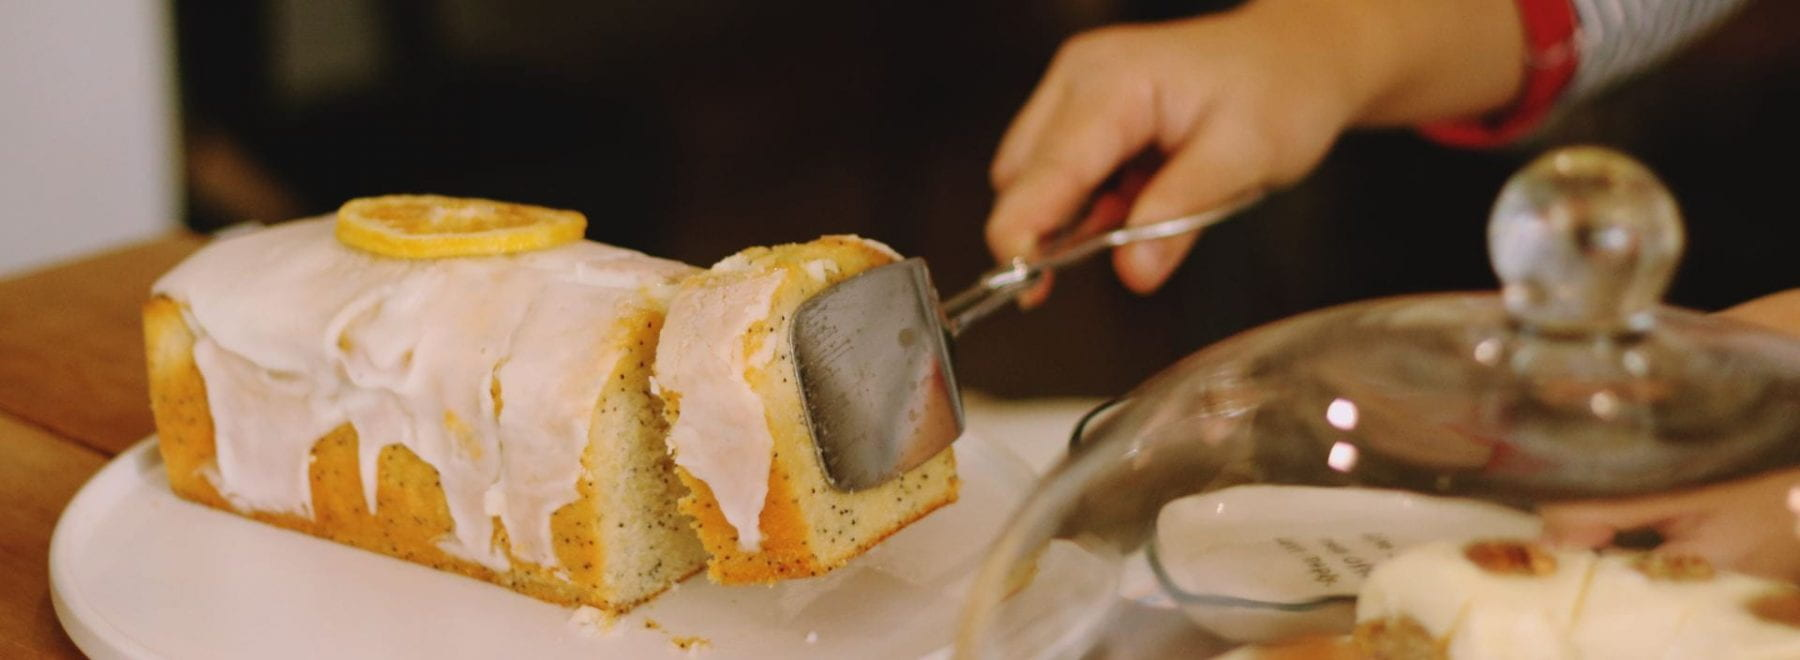 A person picking up a slice of lemon cake